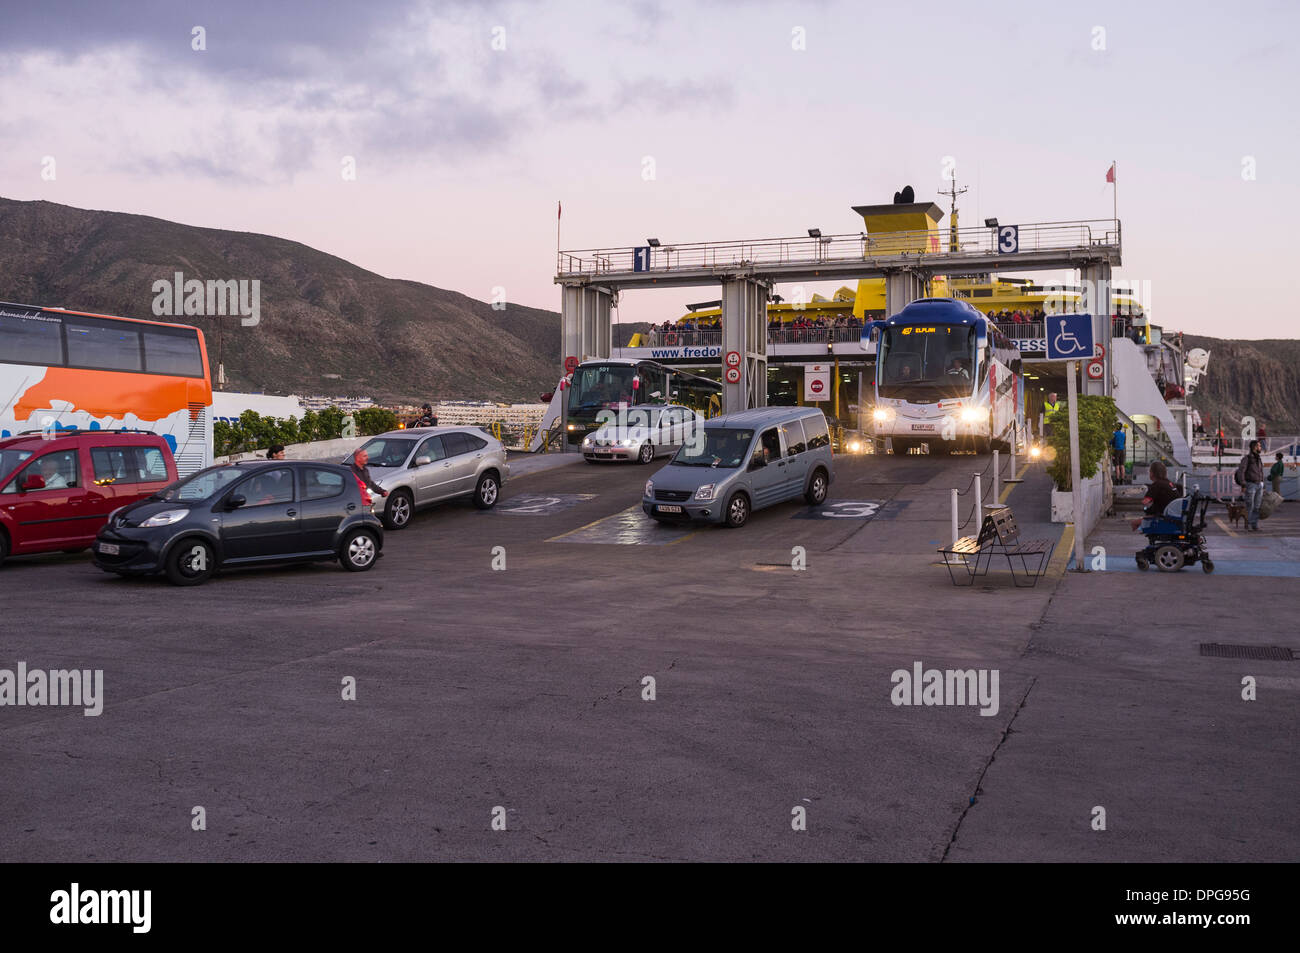 Disembarking from the fred olsen ferry at los cristianos for Oficina fred olsen los cristianos